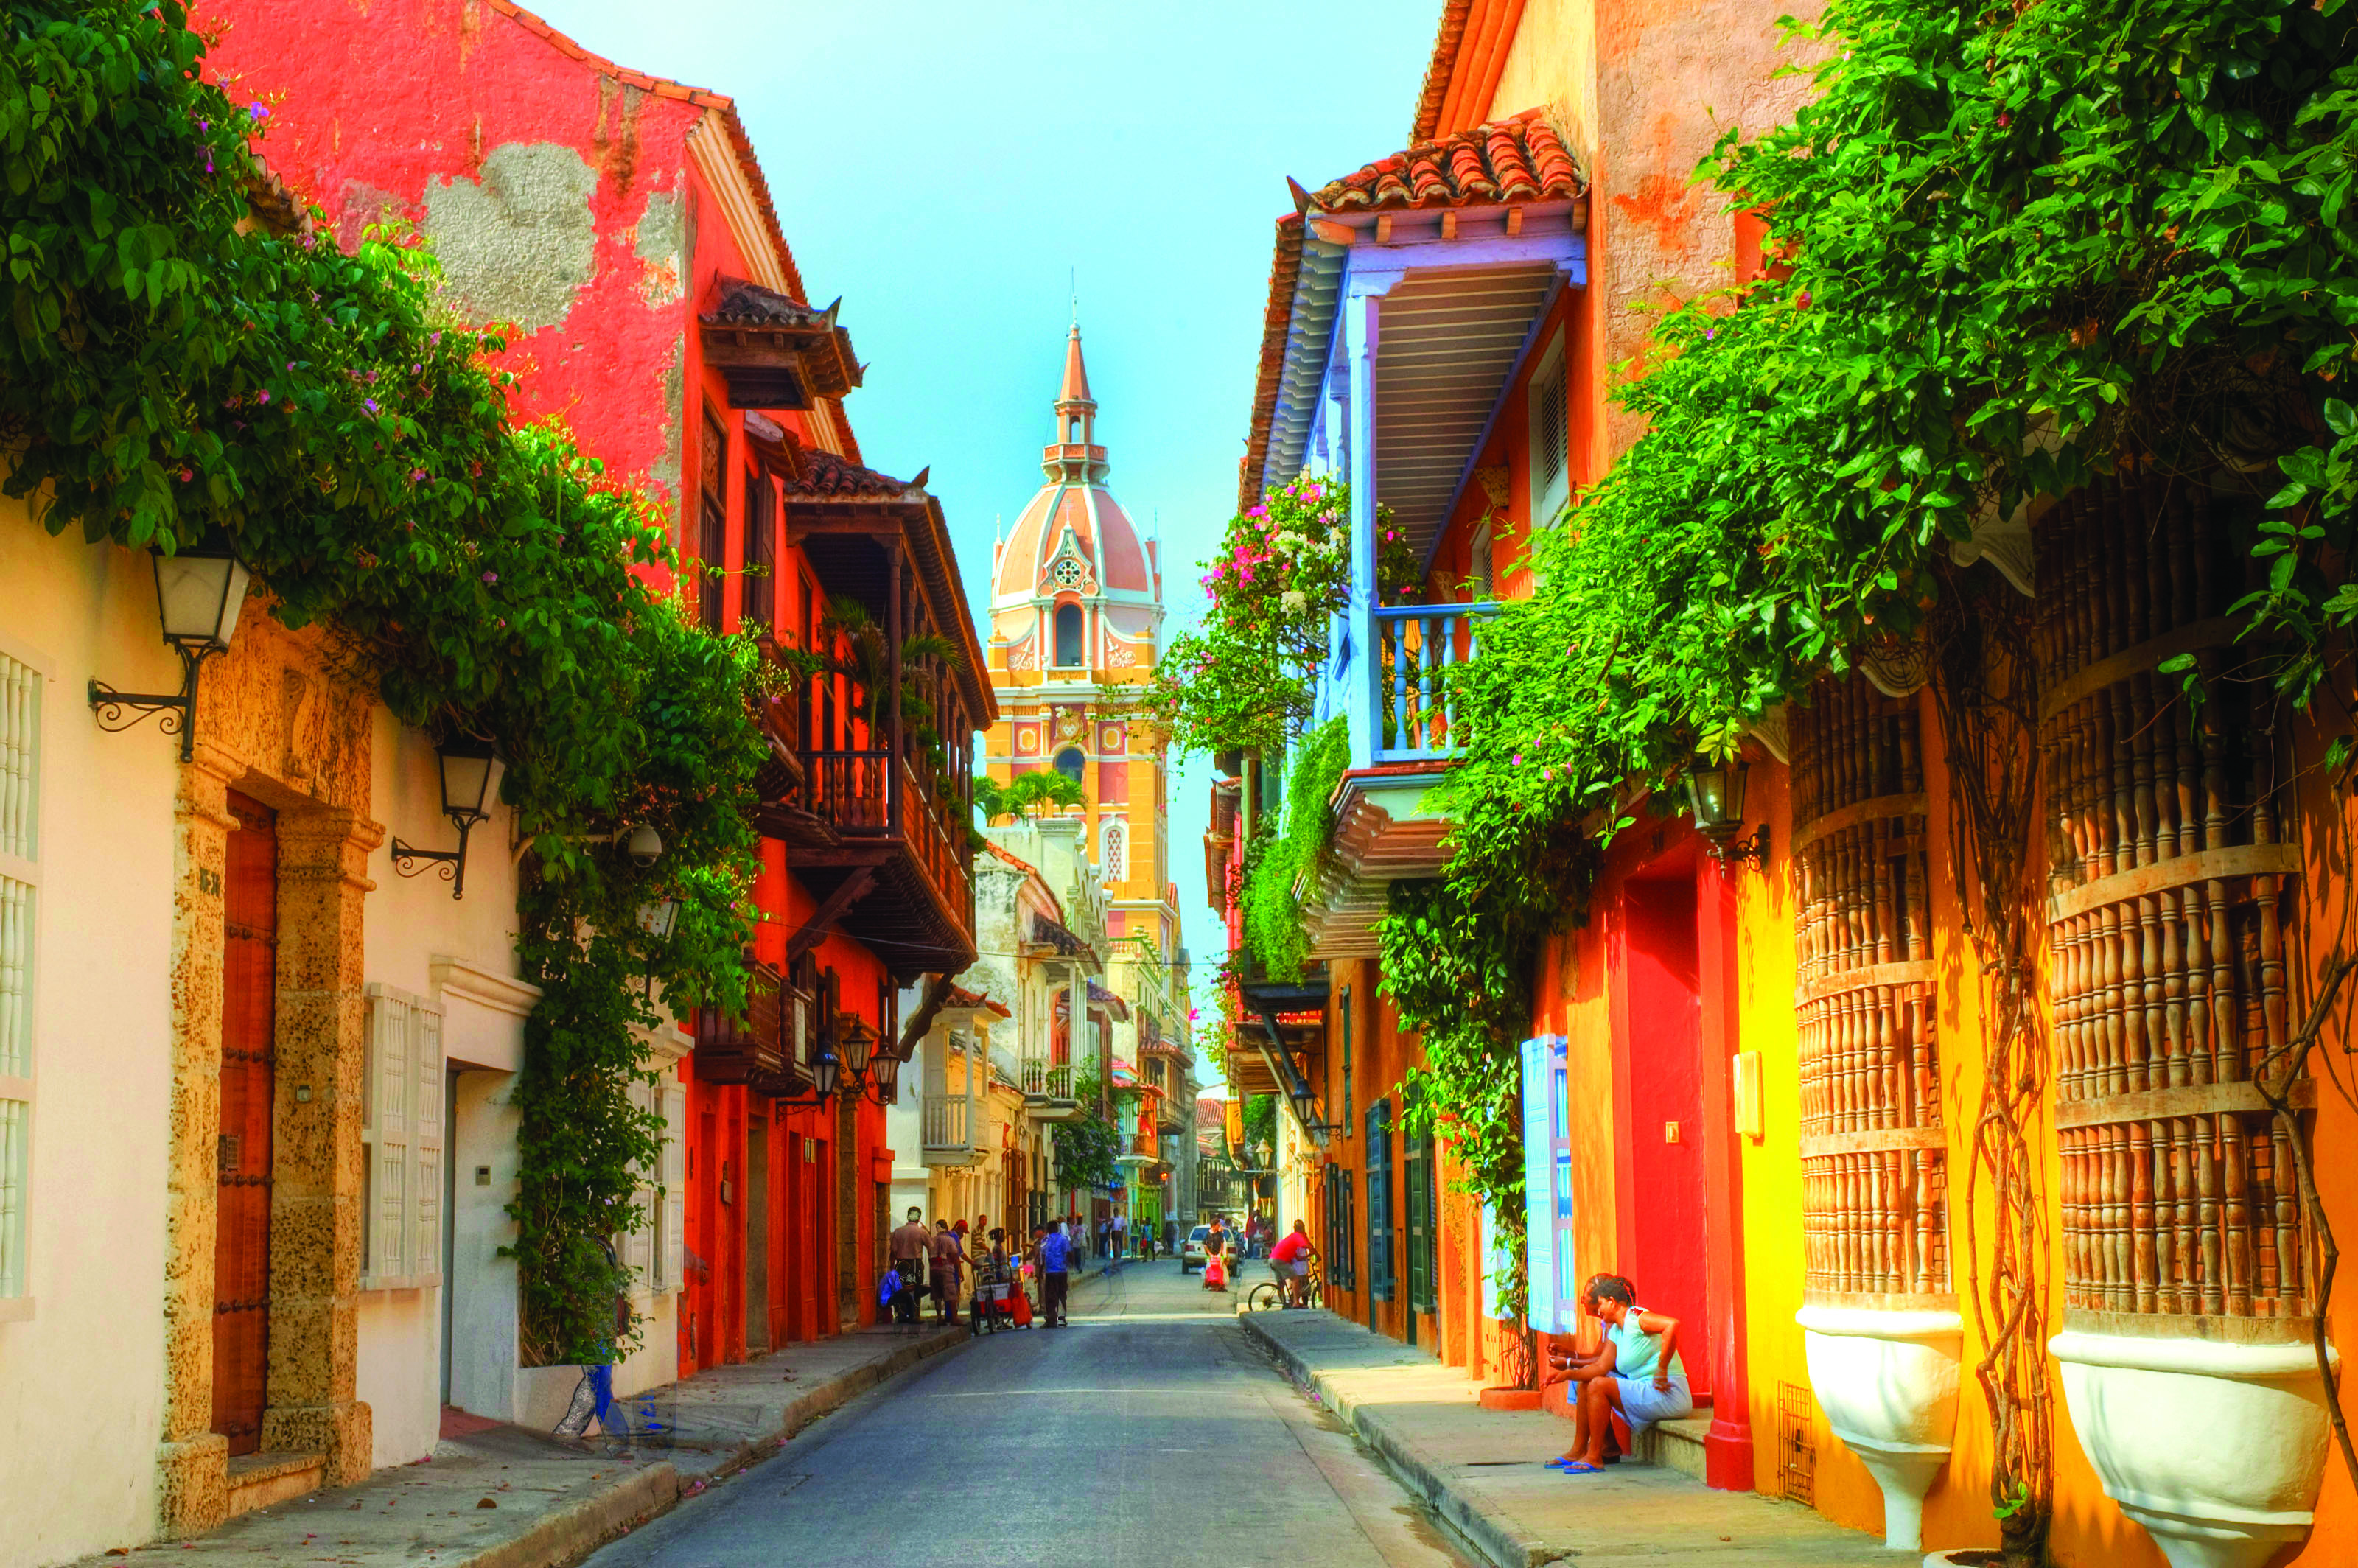 oude stad cartagena